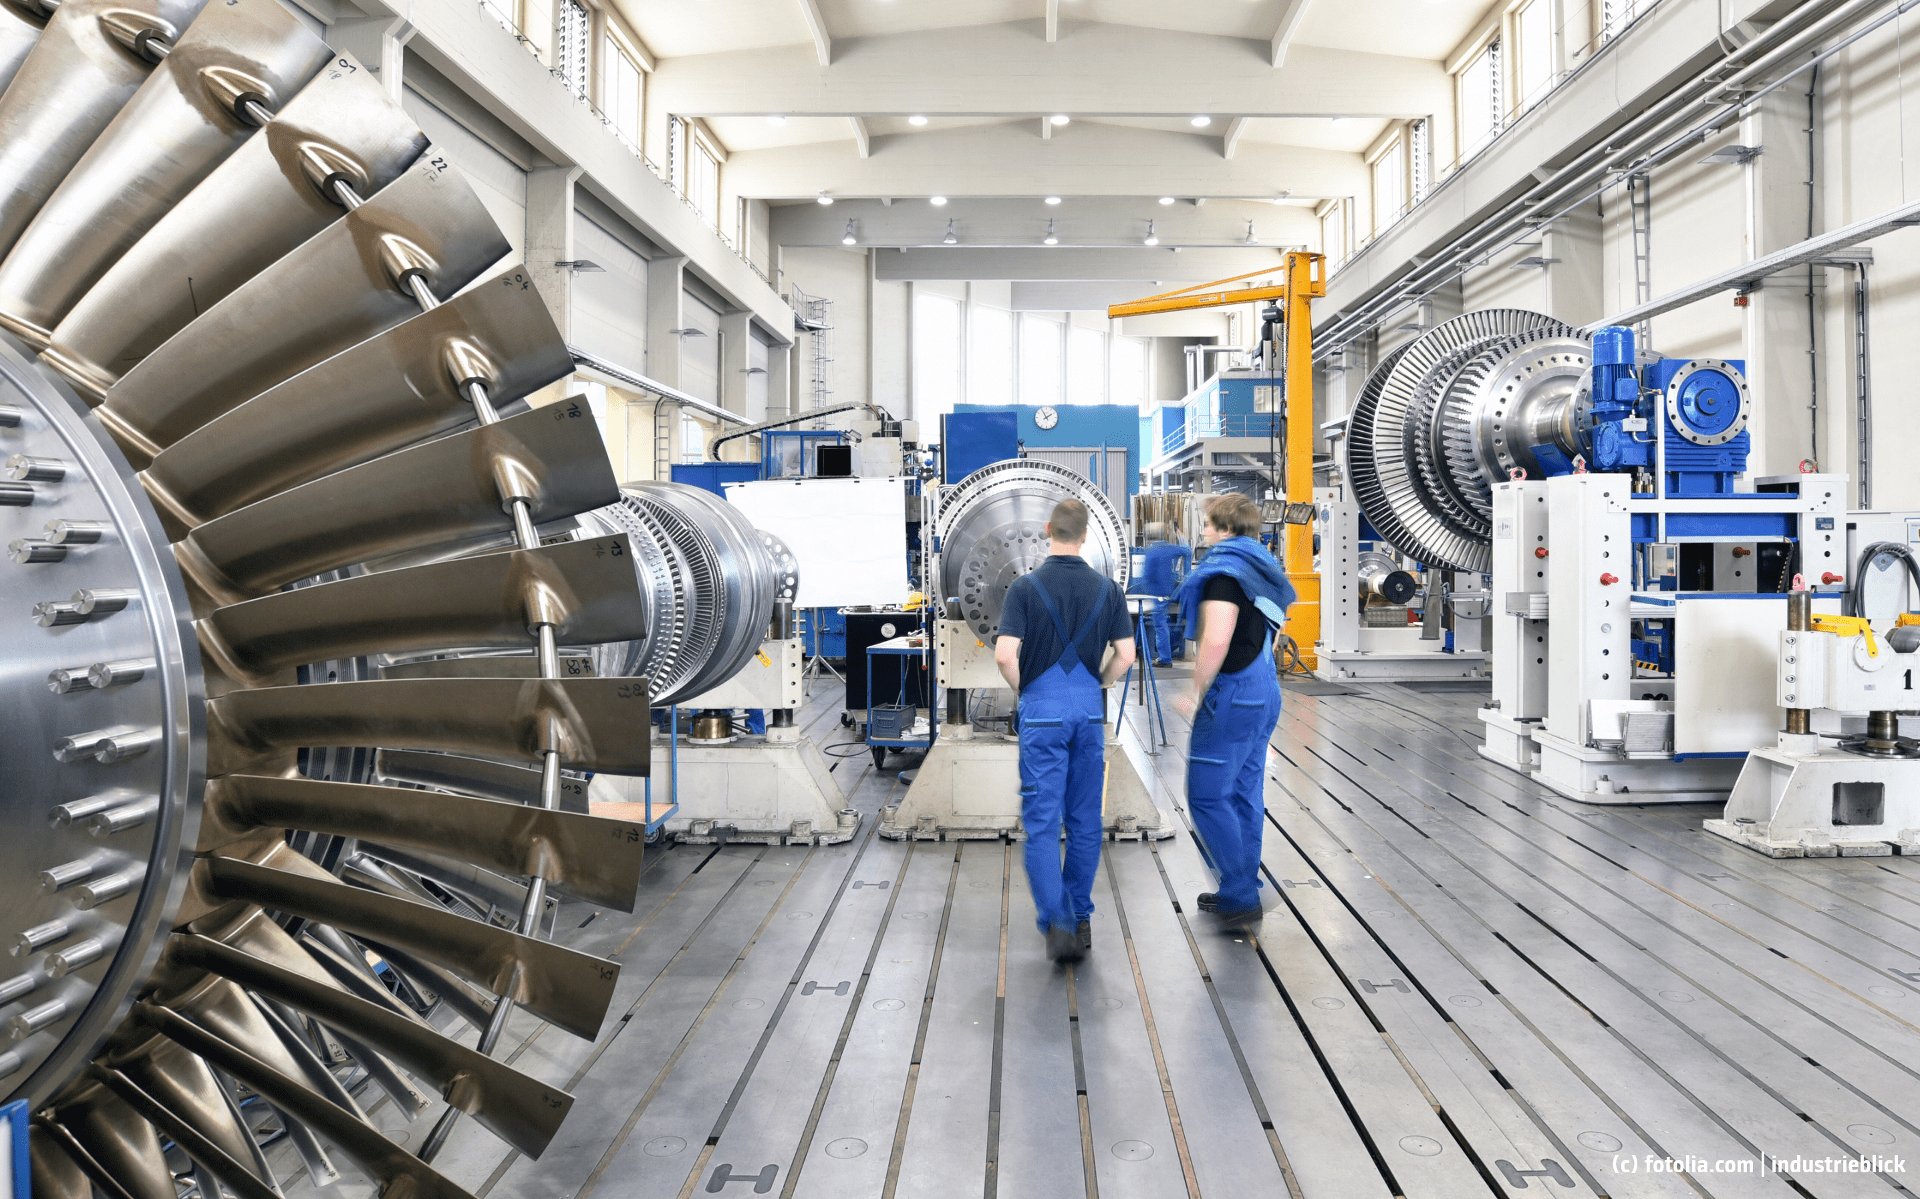 Optimize manufacturing with AI, machine learning and digitalization – The Manufacturer